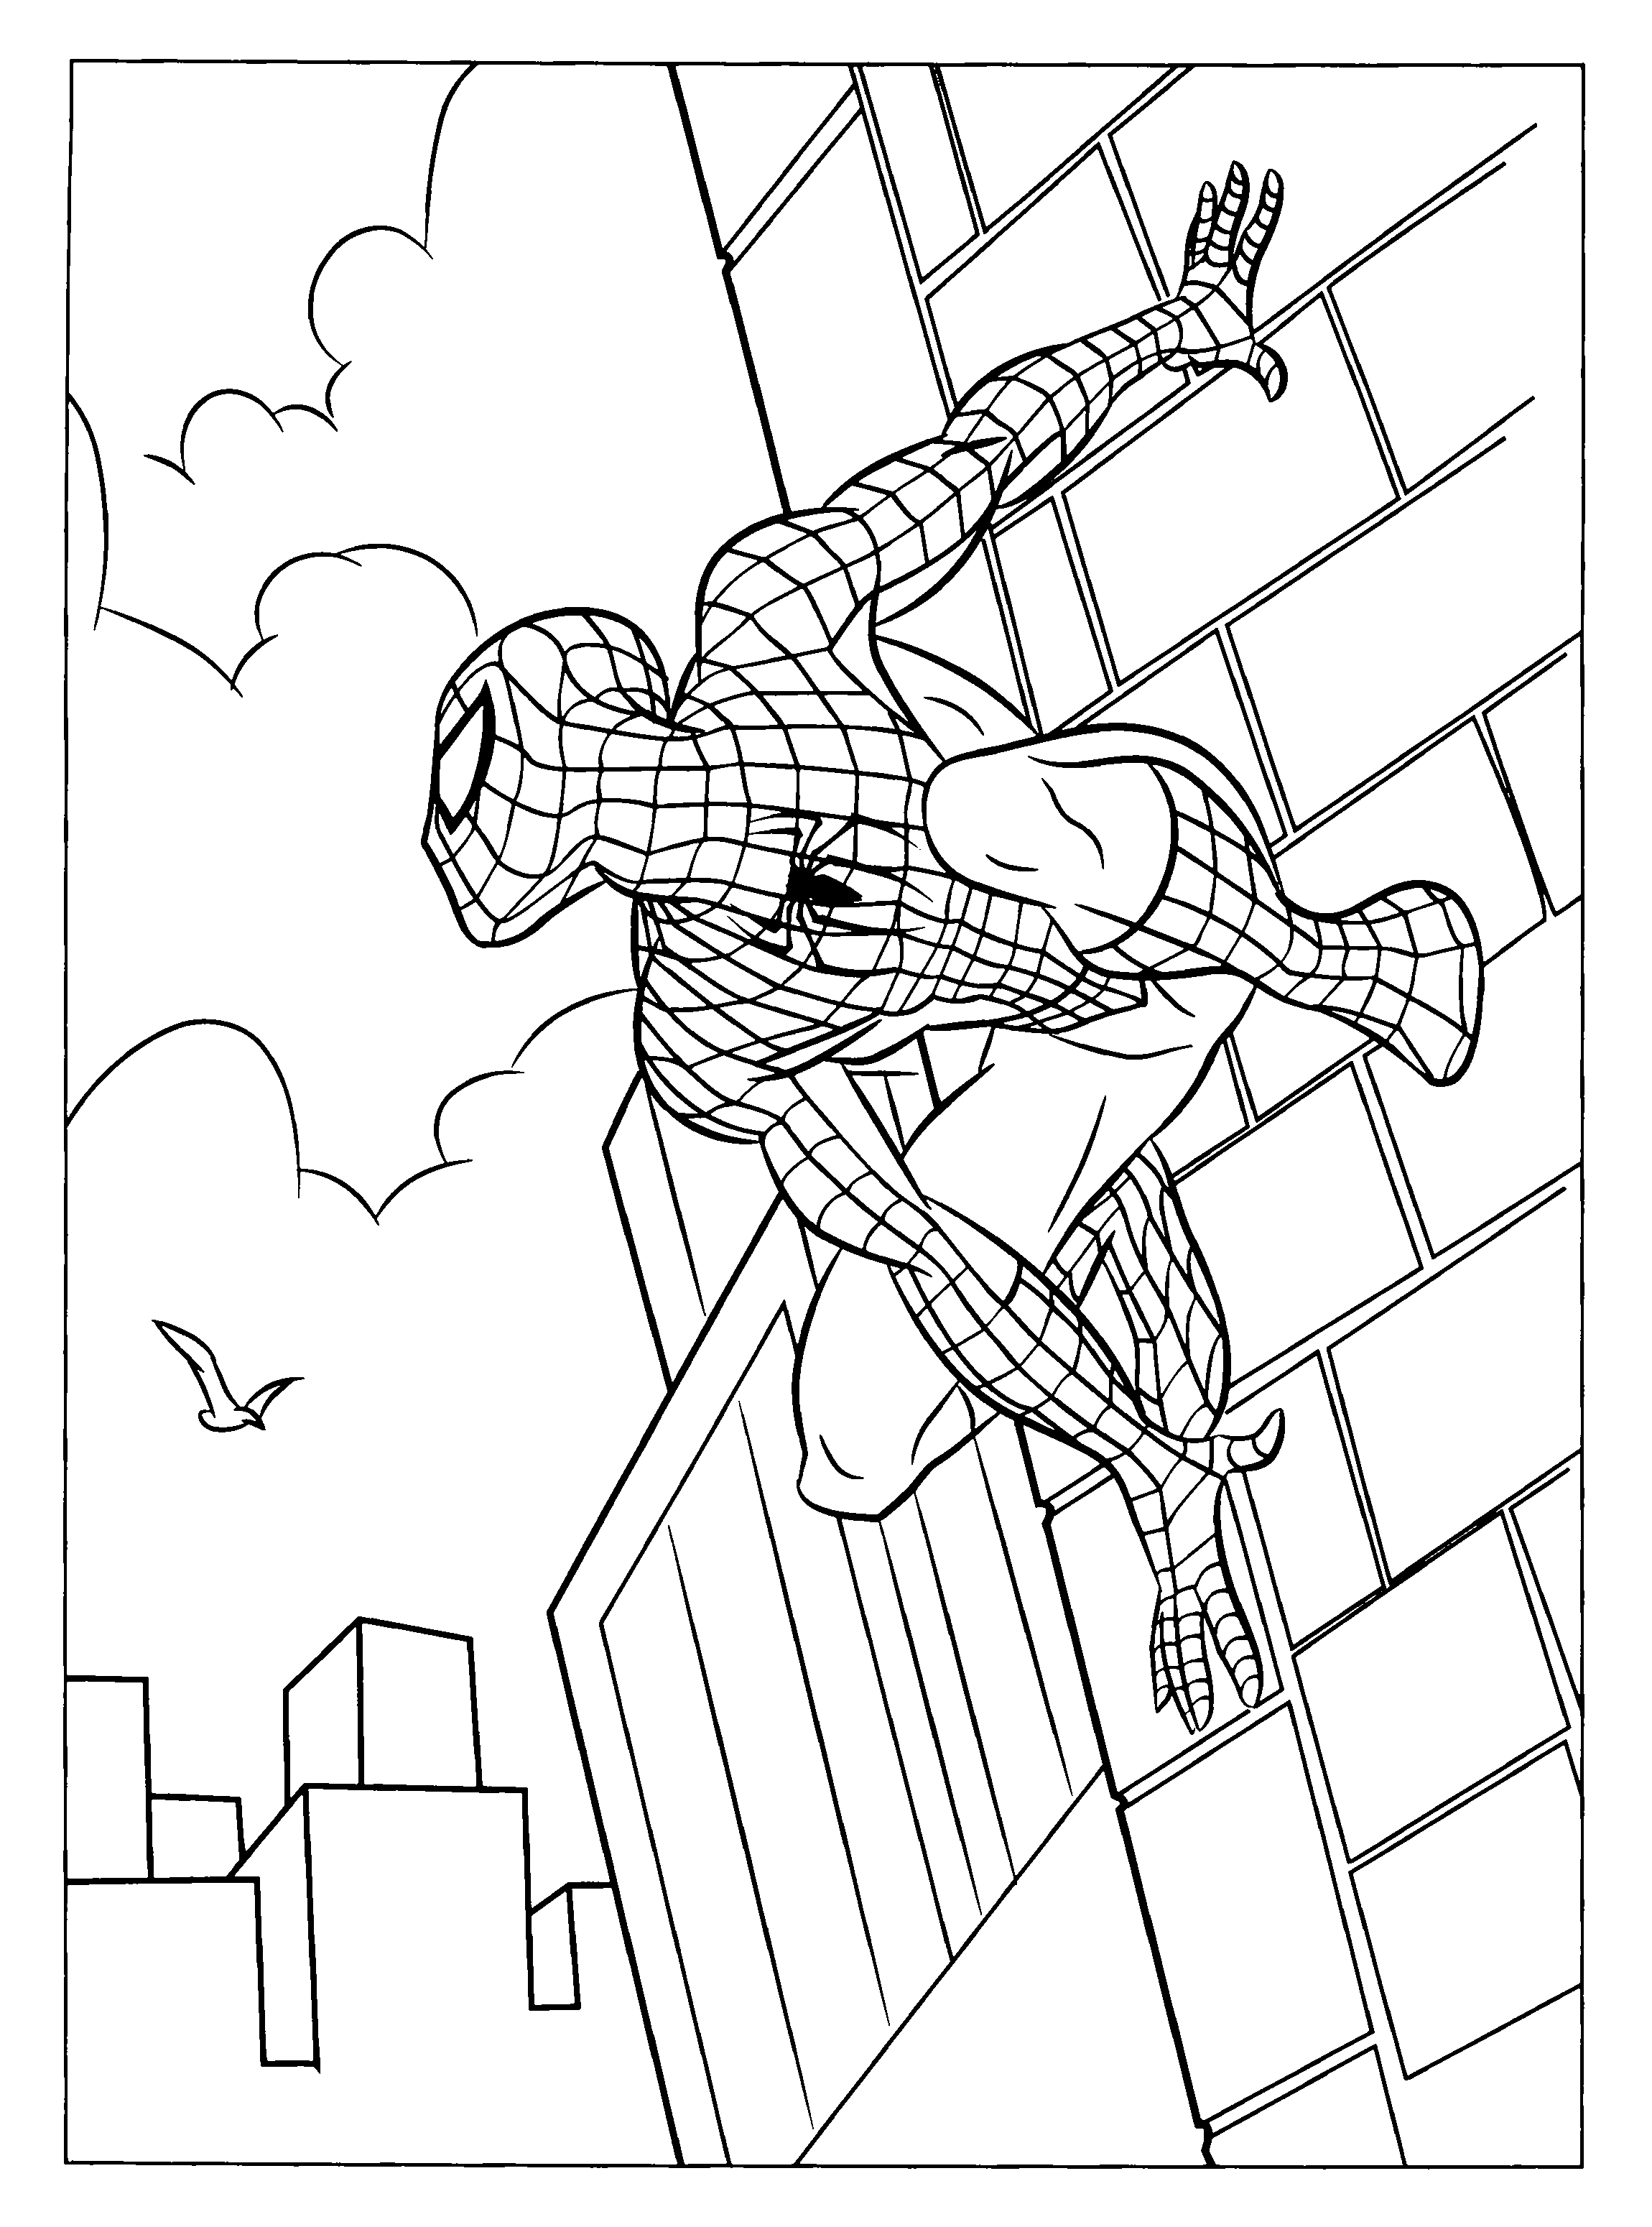 picture regarding Free Printable Spiderman Coloring Pages titled 20 Printable Spiderman Coloring Web pages Collections Cost-free